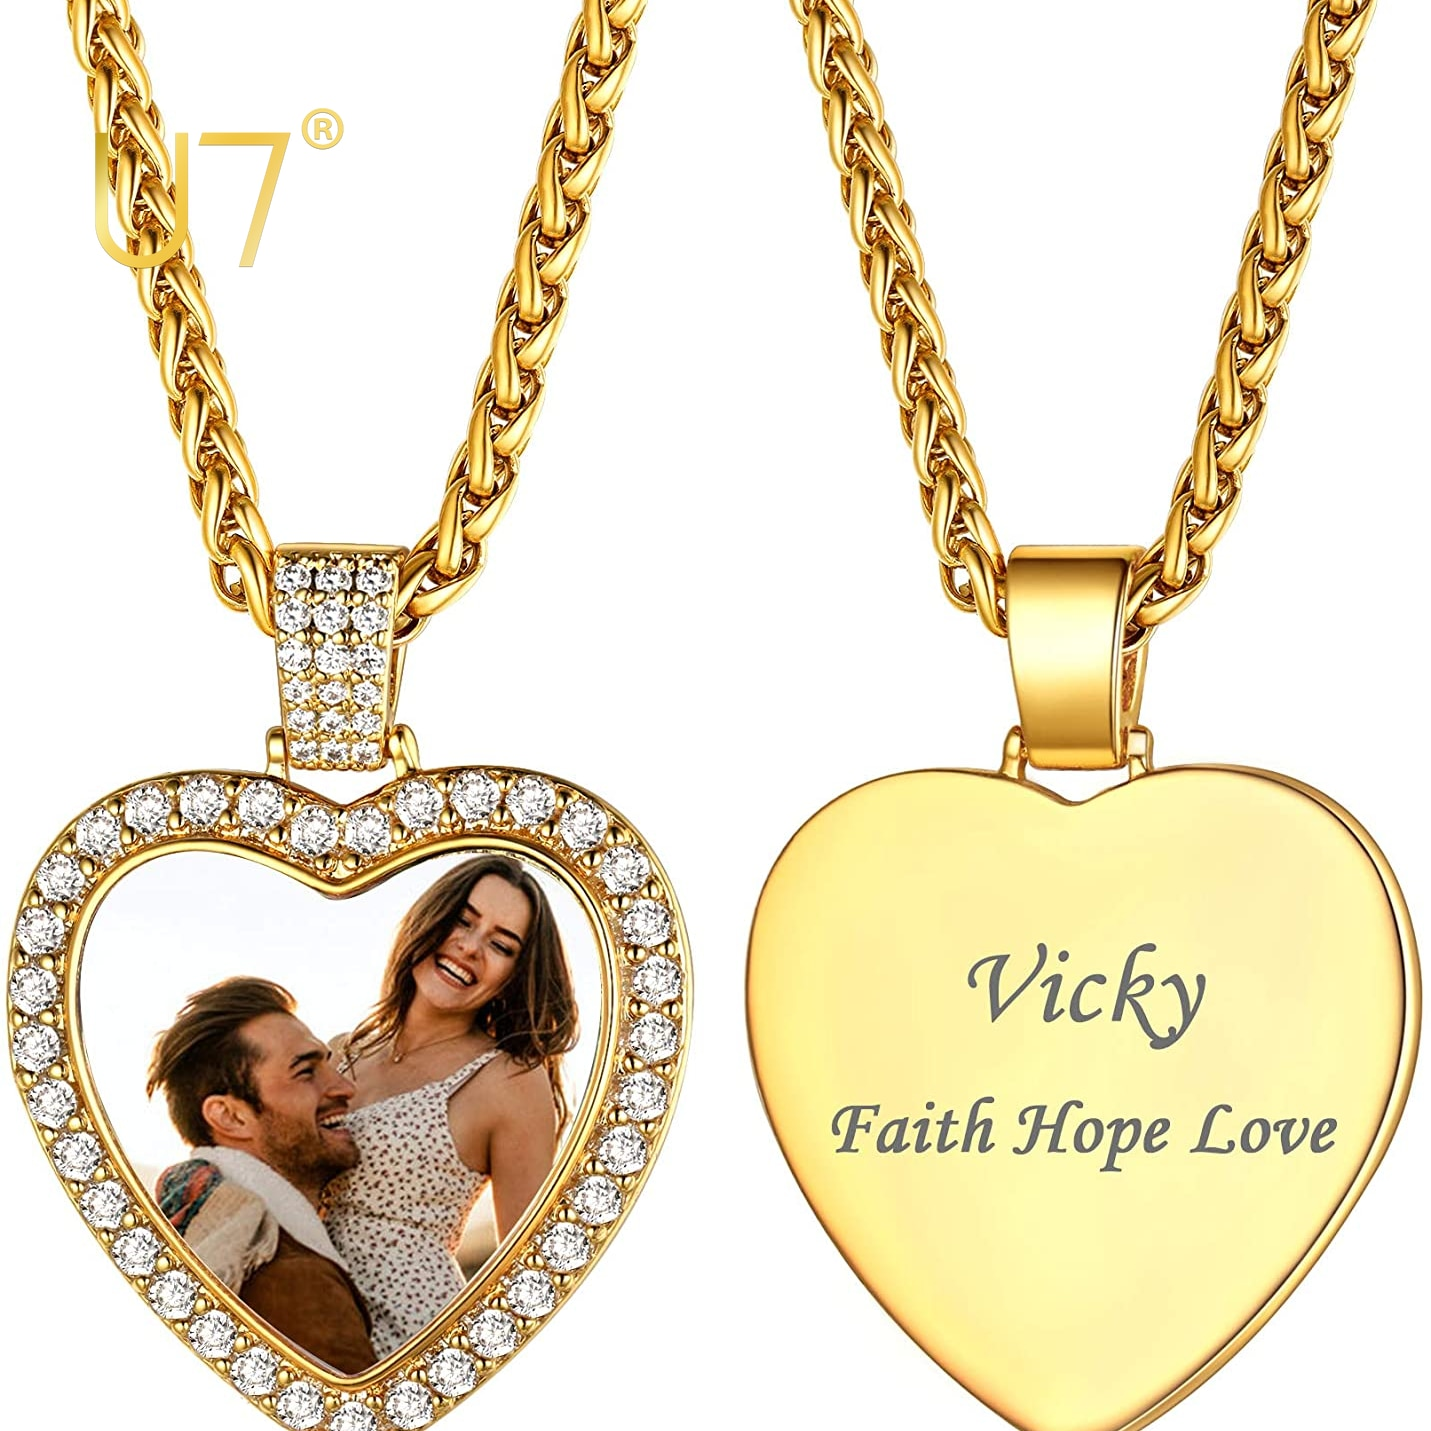 U7 Custom Photo Necklace Men Women Stainless Steel Jewelry Personalized Gift Customized Any Picture Heart Pendant